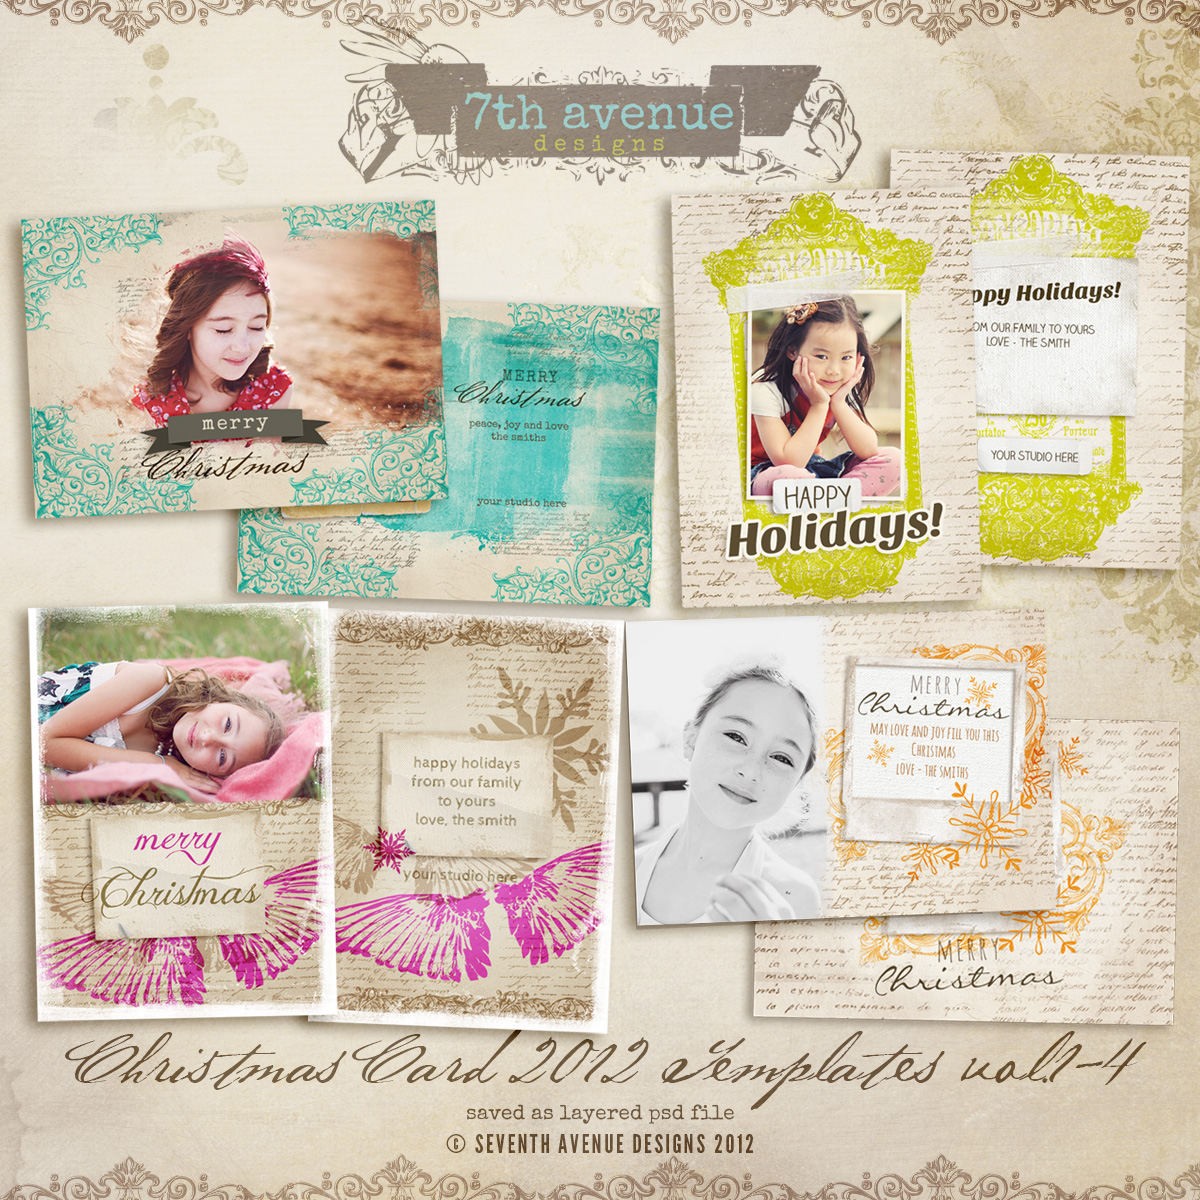 2012 Christmas Card Templates vol.1-4 -- 7x5 inch card template